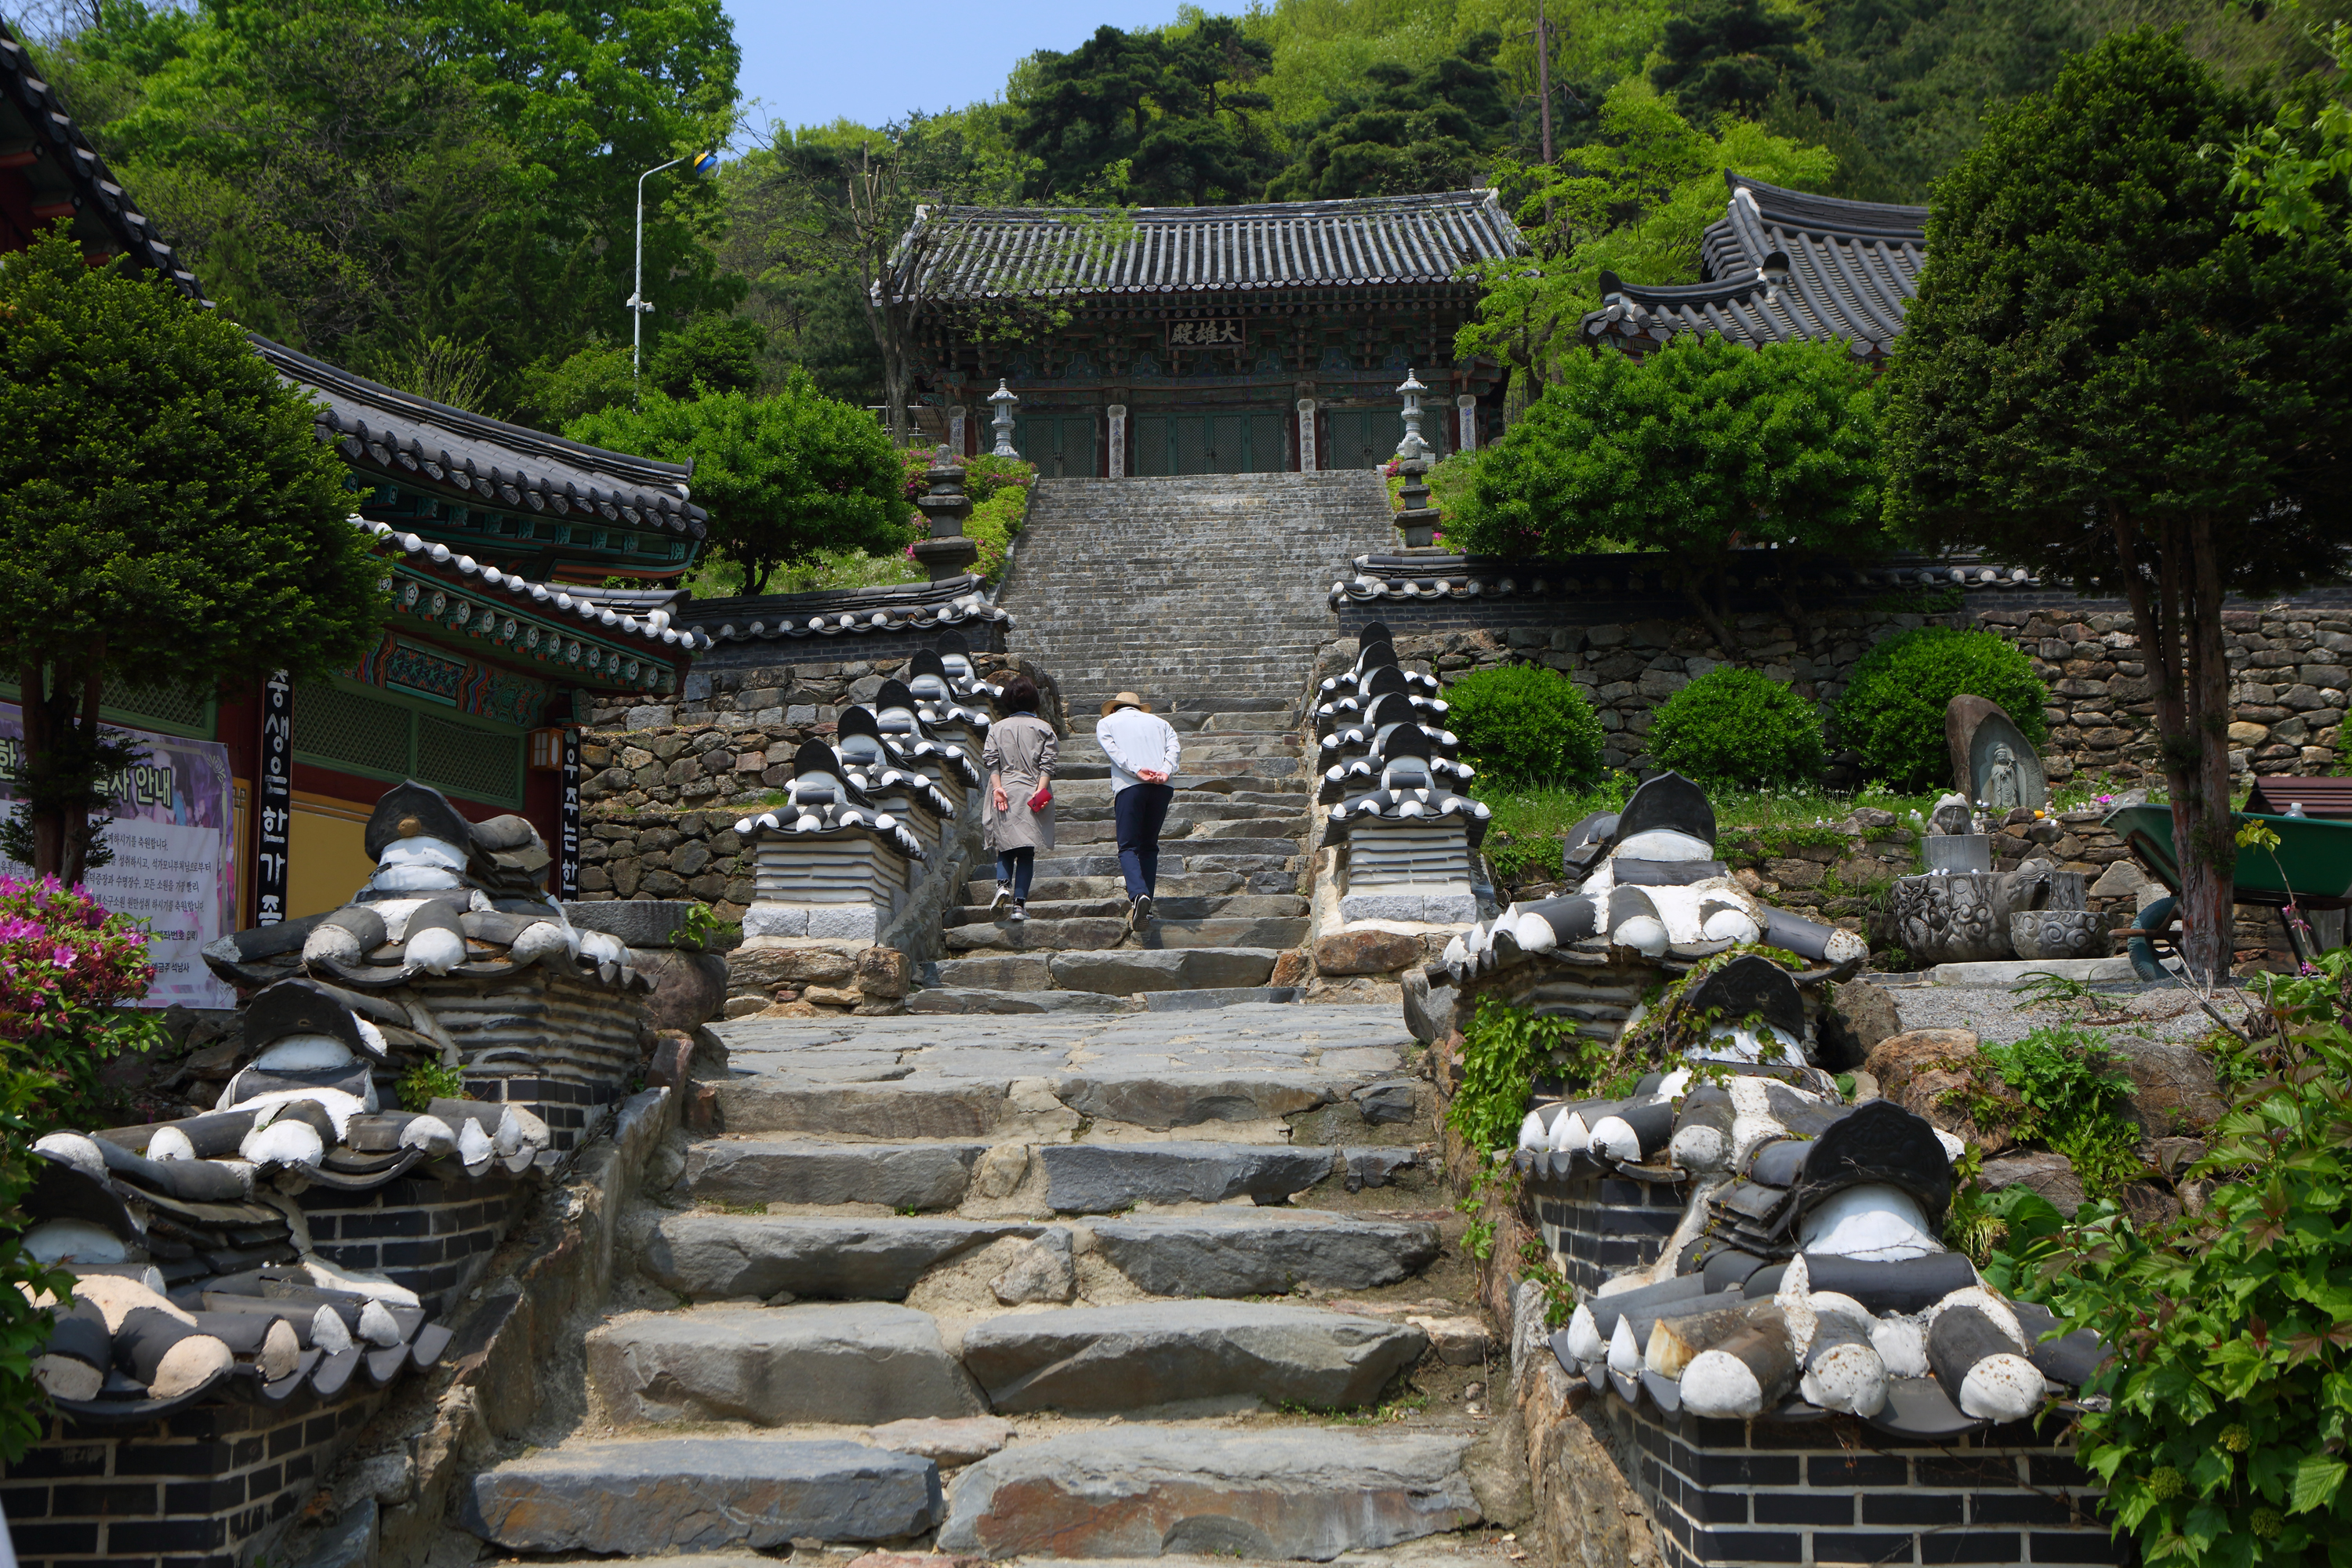 A front view of the stone stairs to the main temple of  Seoknamsa Temple. It's surrounded by greenish nature and hamonized with them very well. Two people are walking on the stairs.